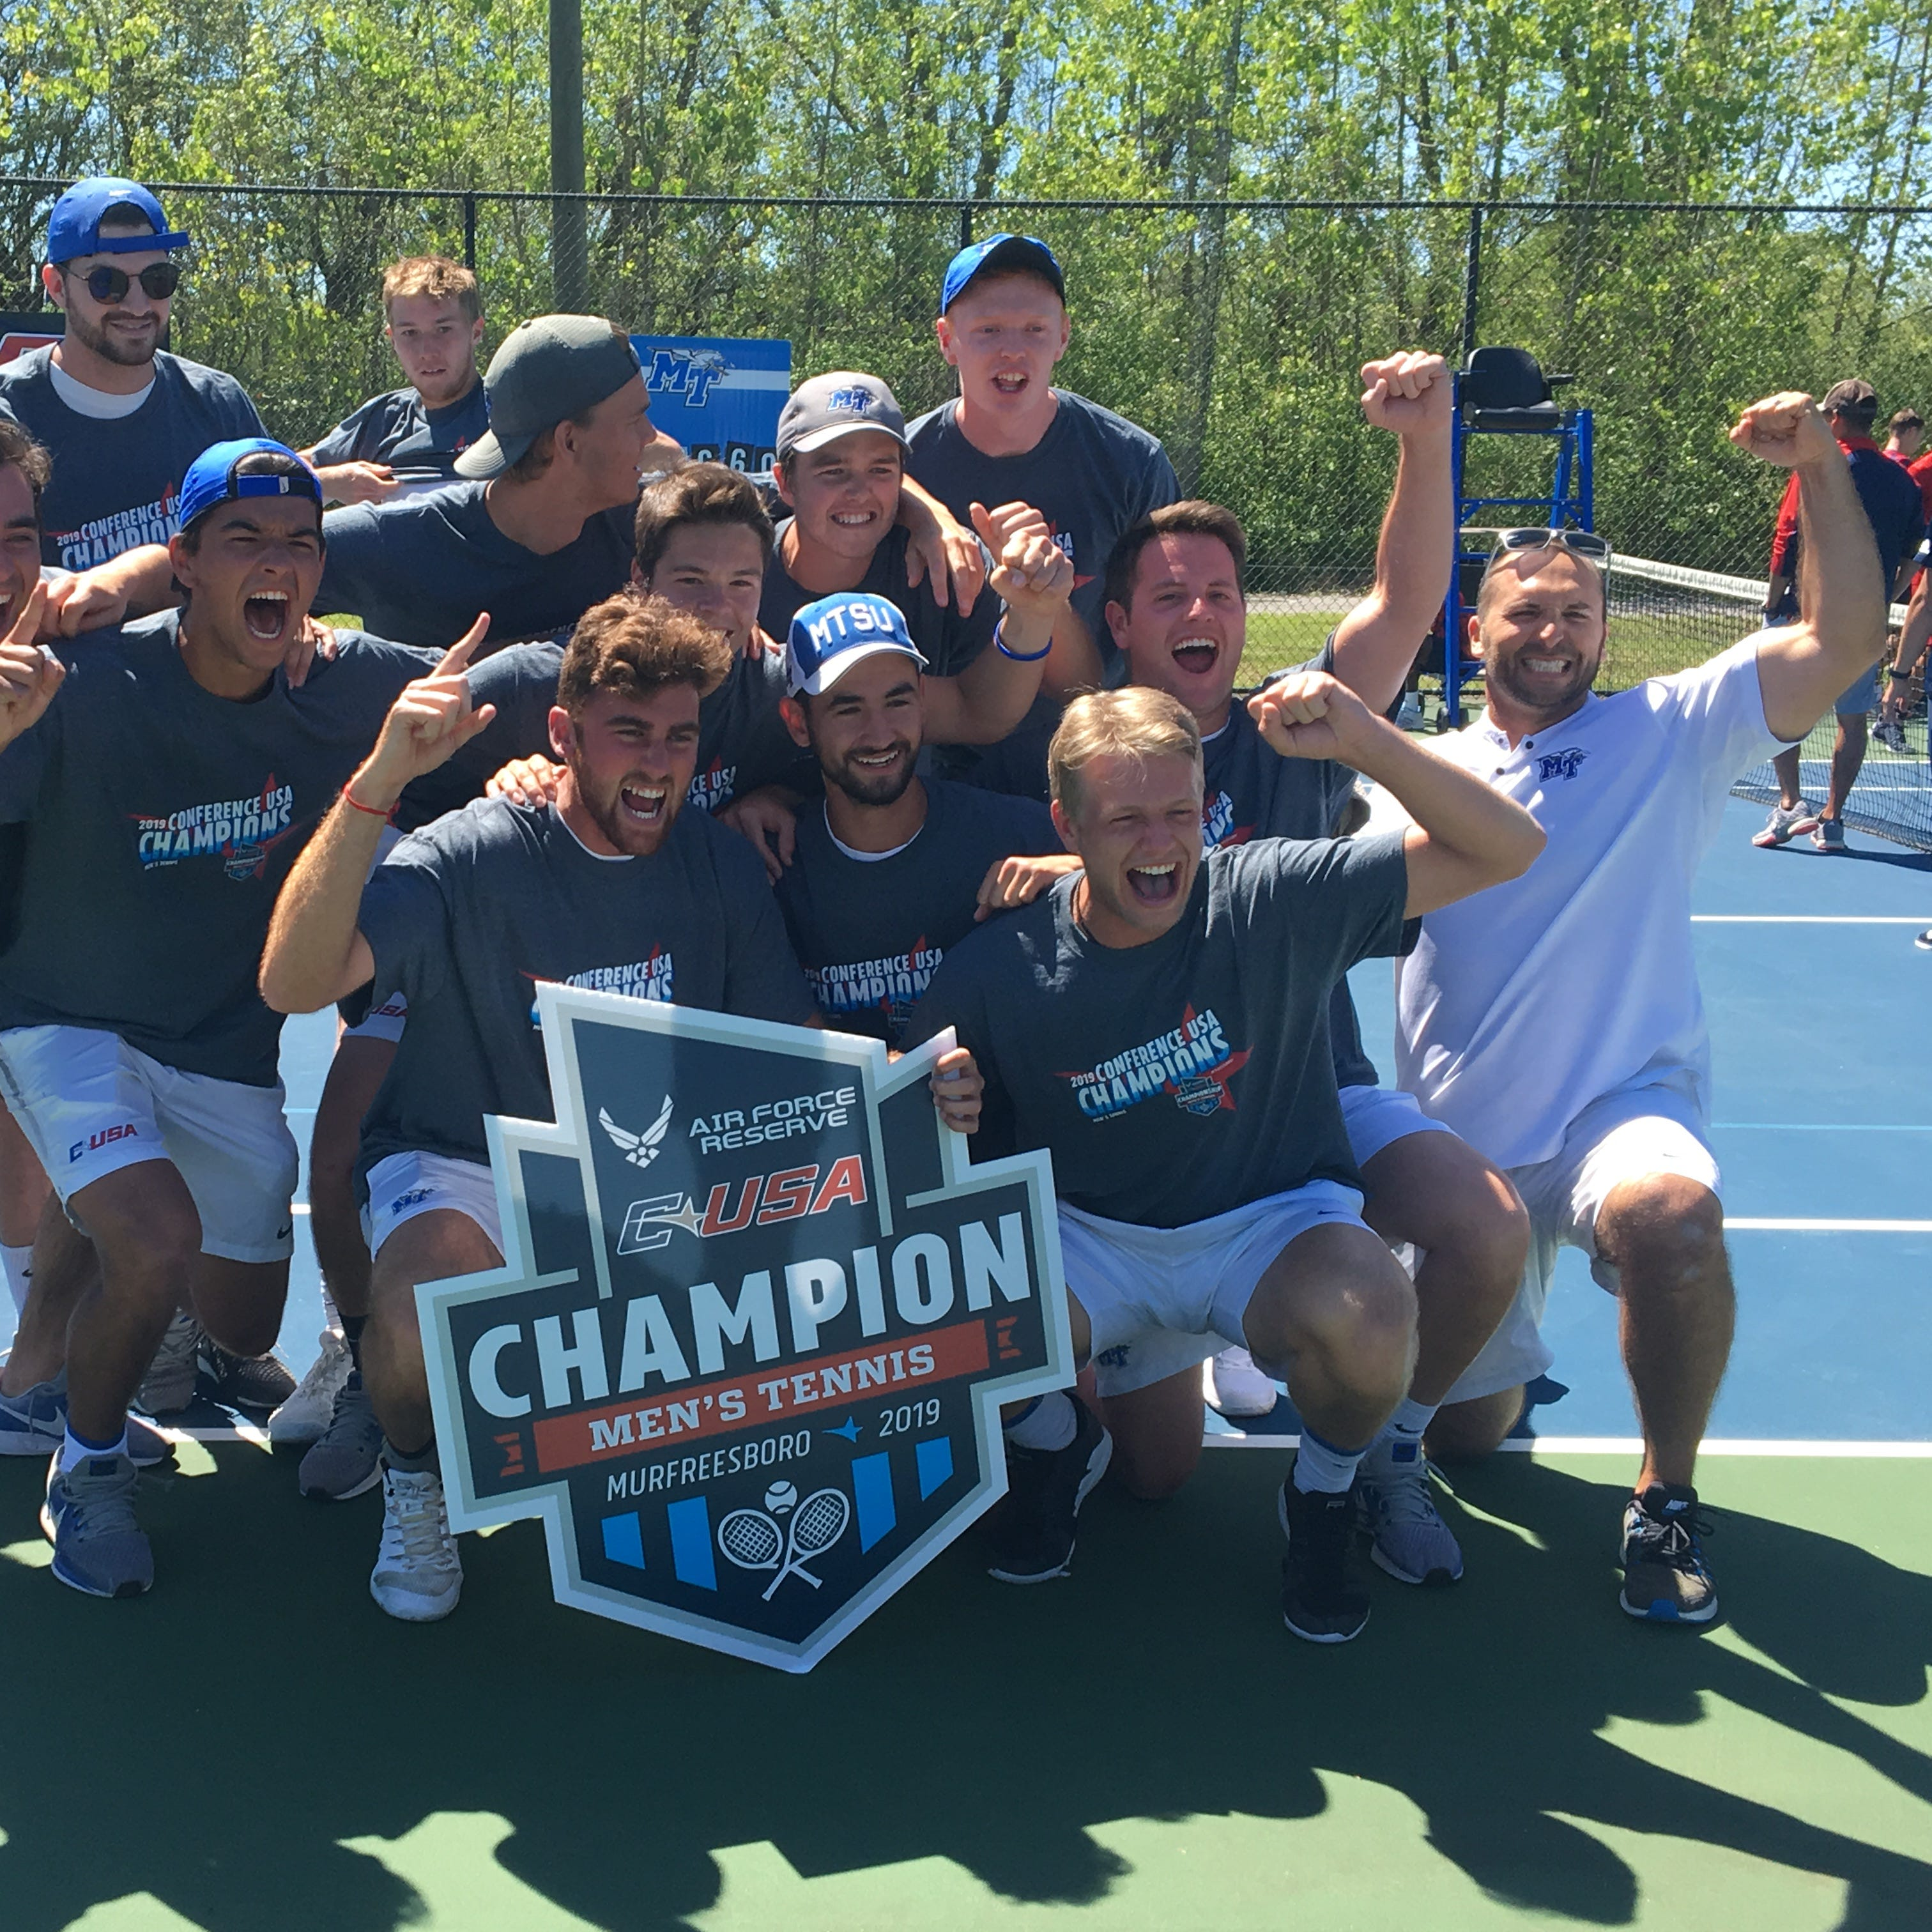 MTSU men's tennis wins Conference USA tournament title, clinches berth in NCAA Tournament